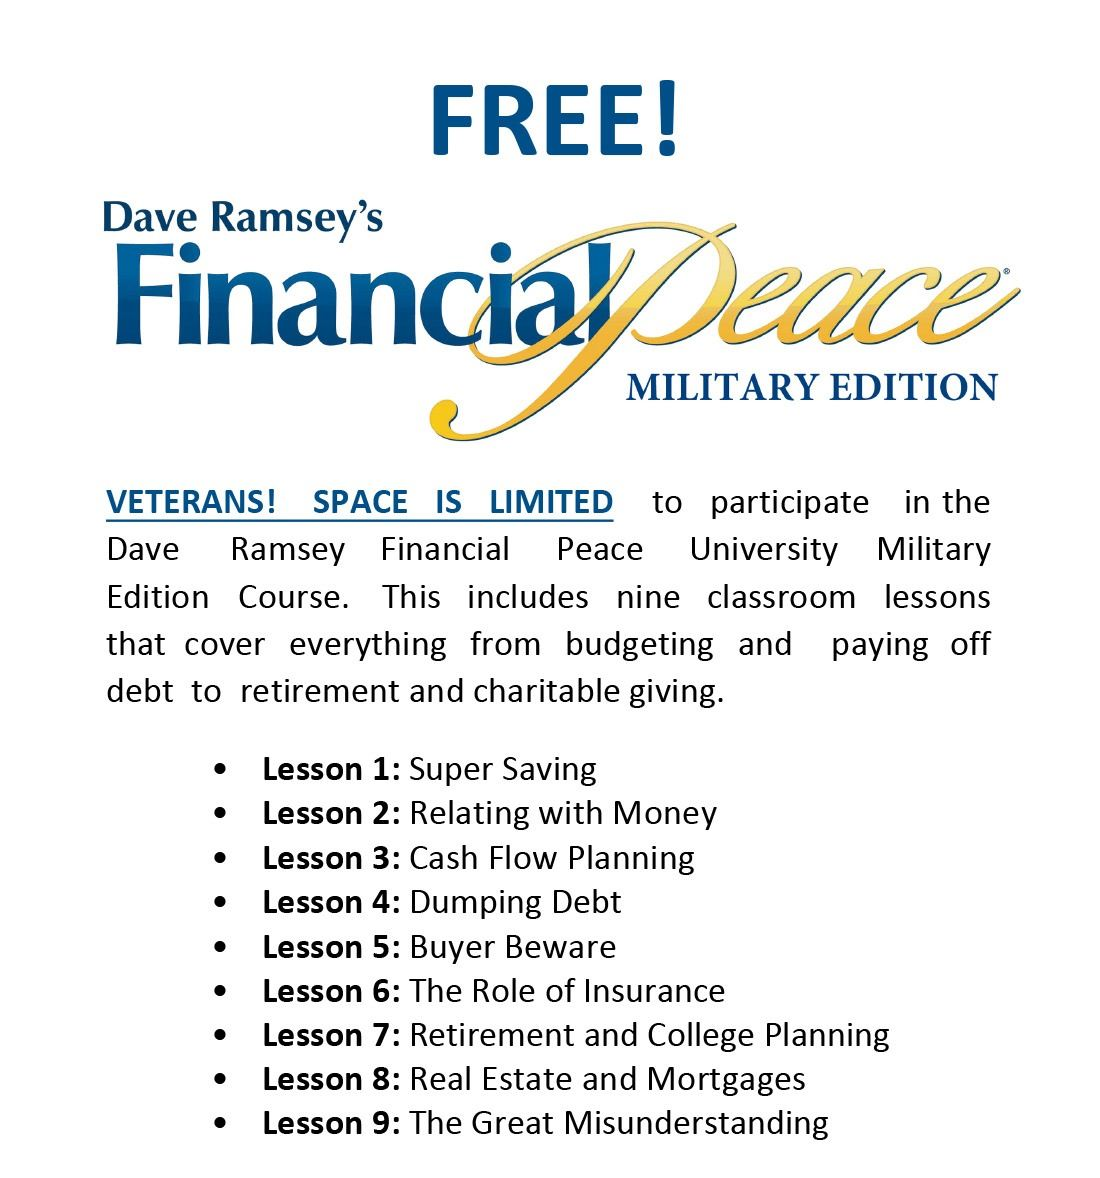 FPU Ramsey Military Edition Page 1